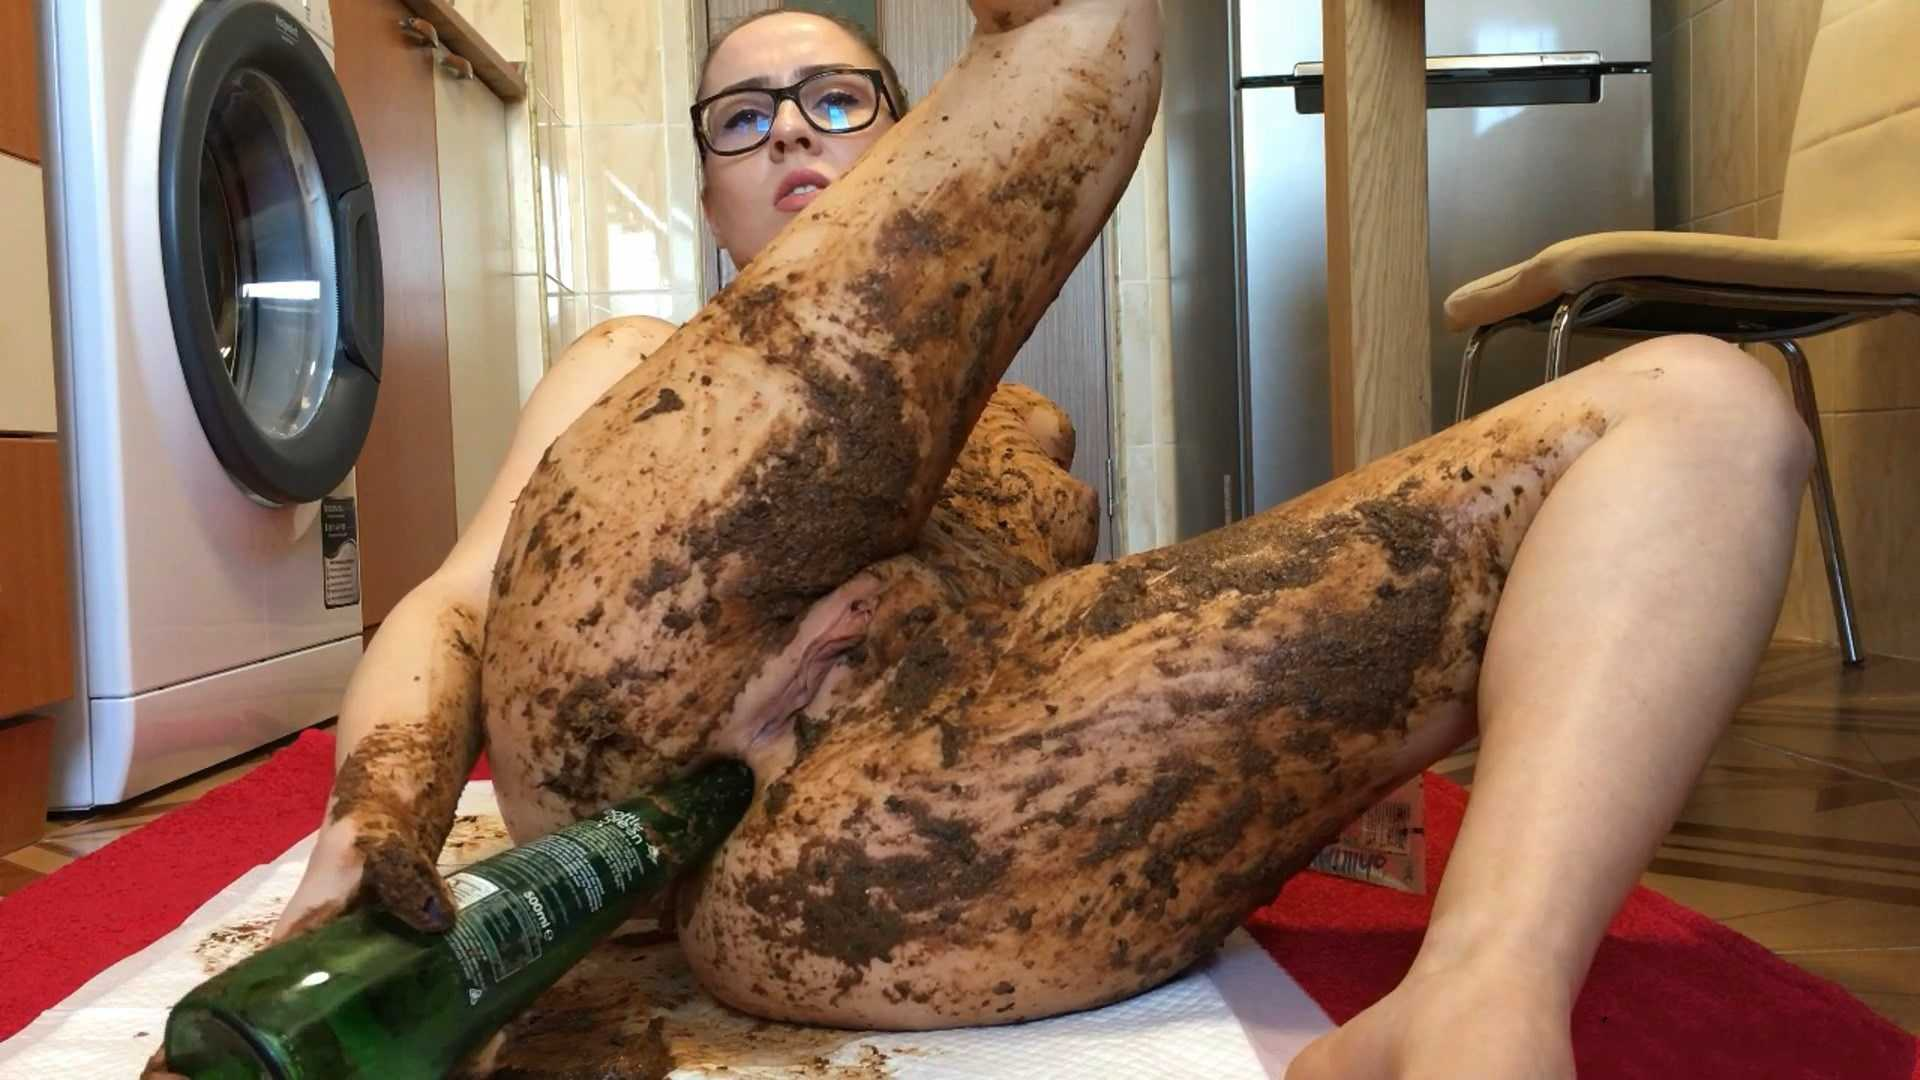 Extreme Body and Face Smearing - EllaGilbert | Full HD 1080p | April 27, 2017